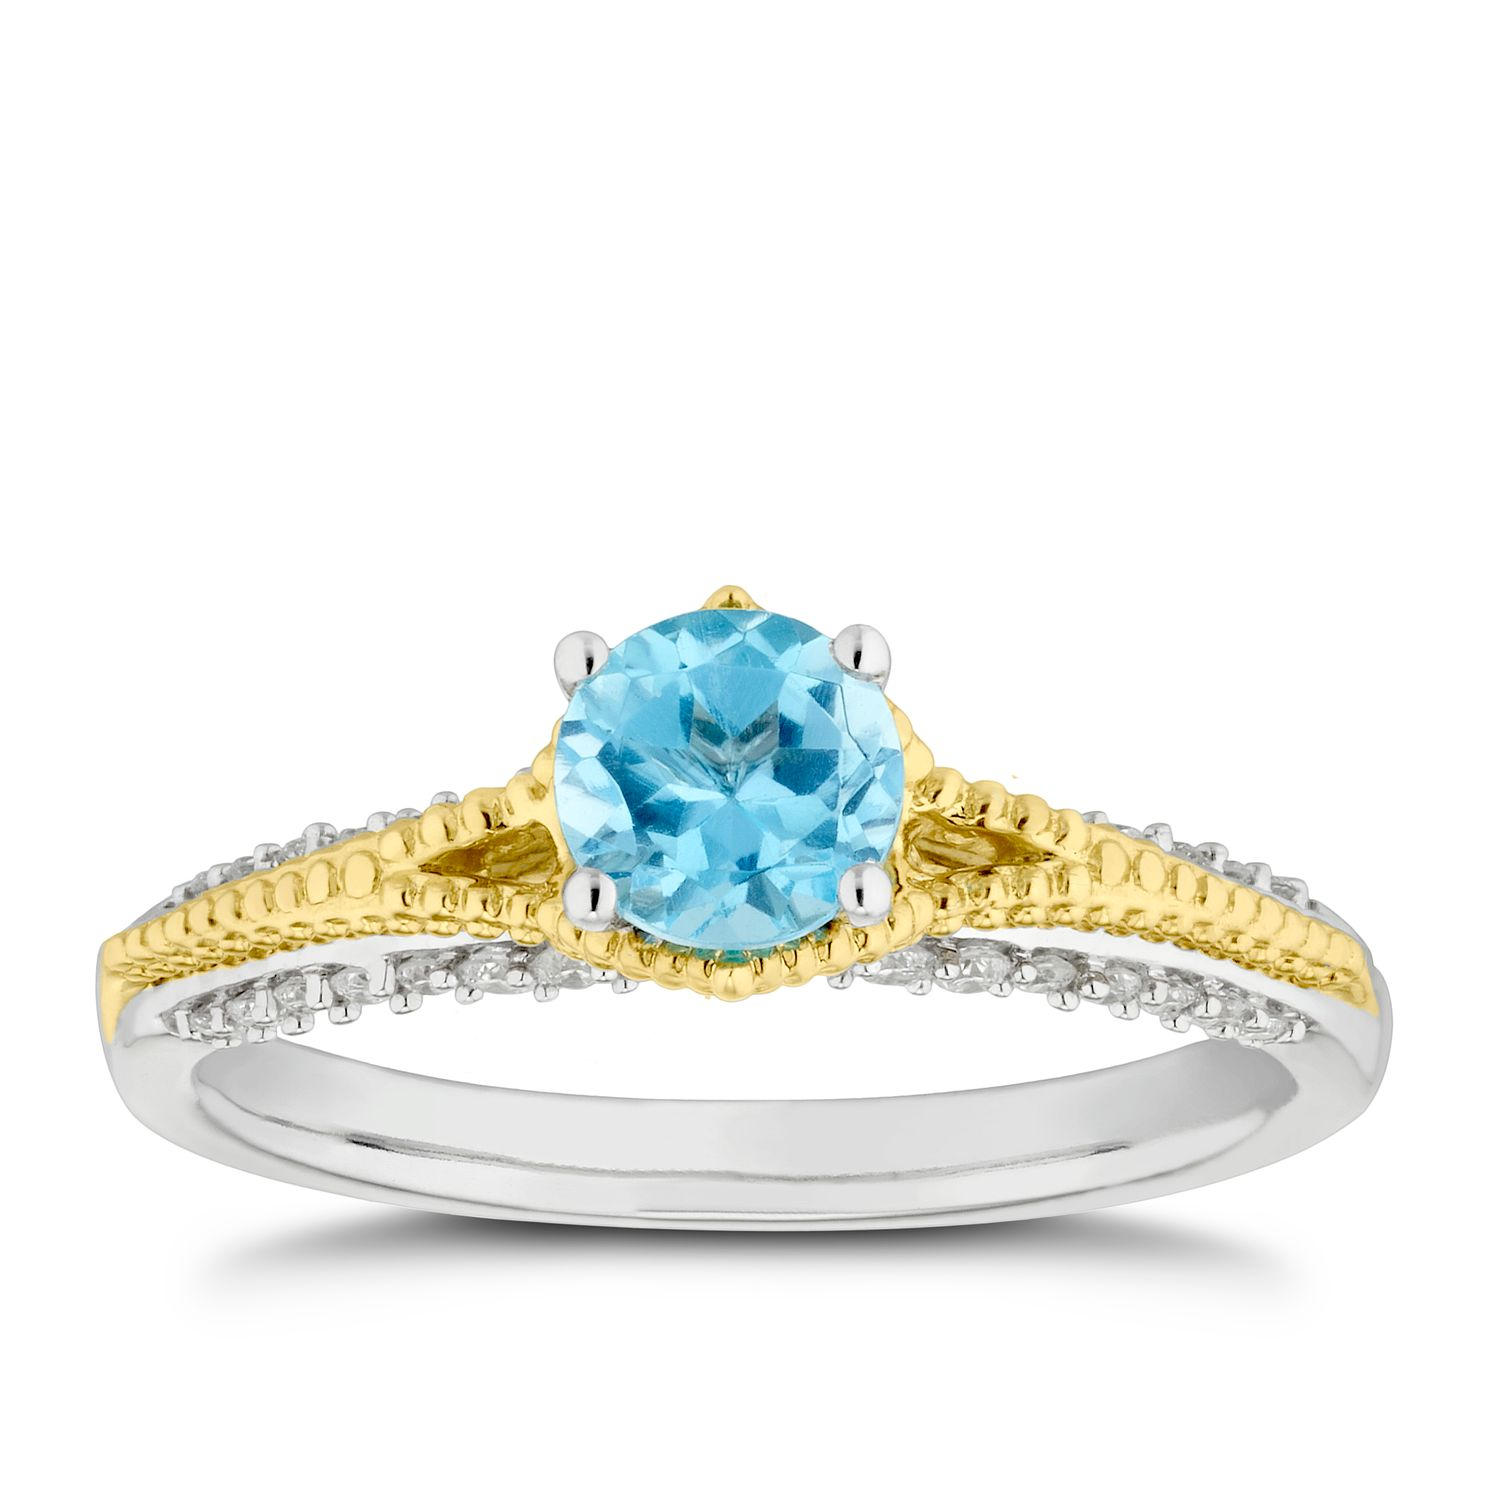 Enchanted Disney Fine Jewelry Diamond Topaz Jasmine Ring - Product number 4675444